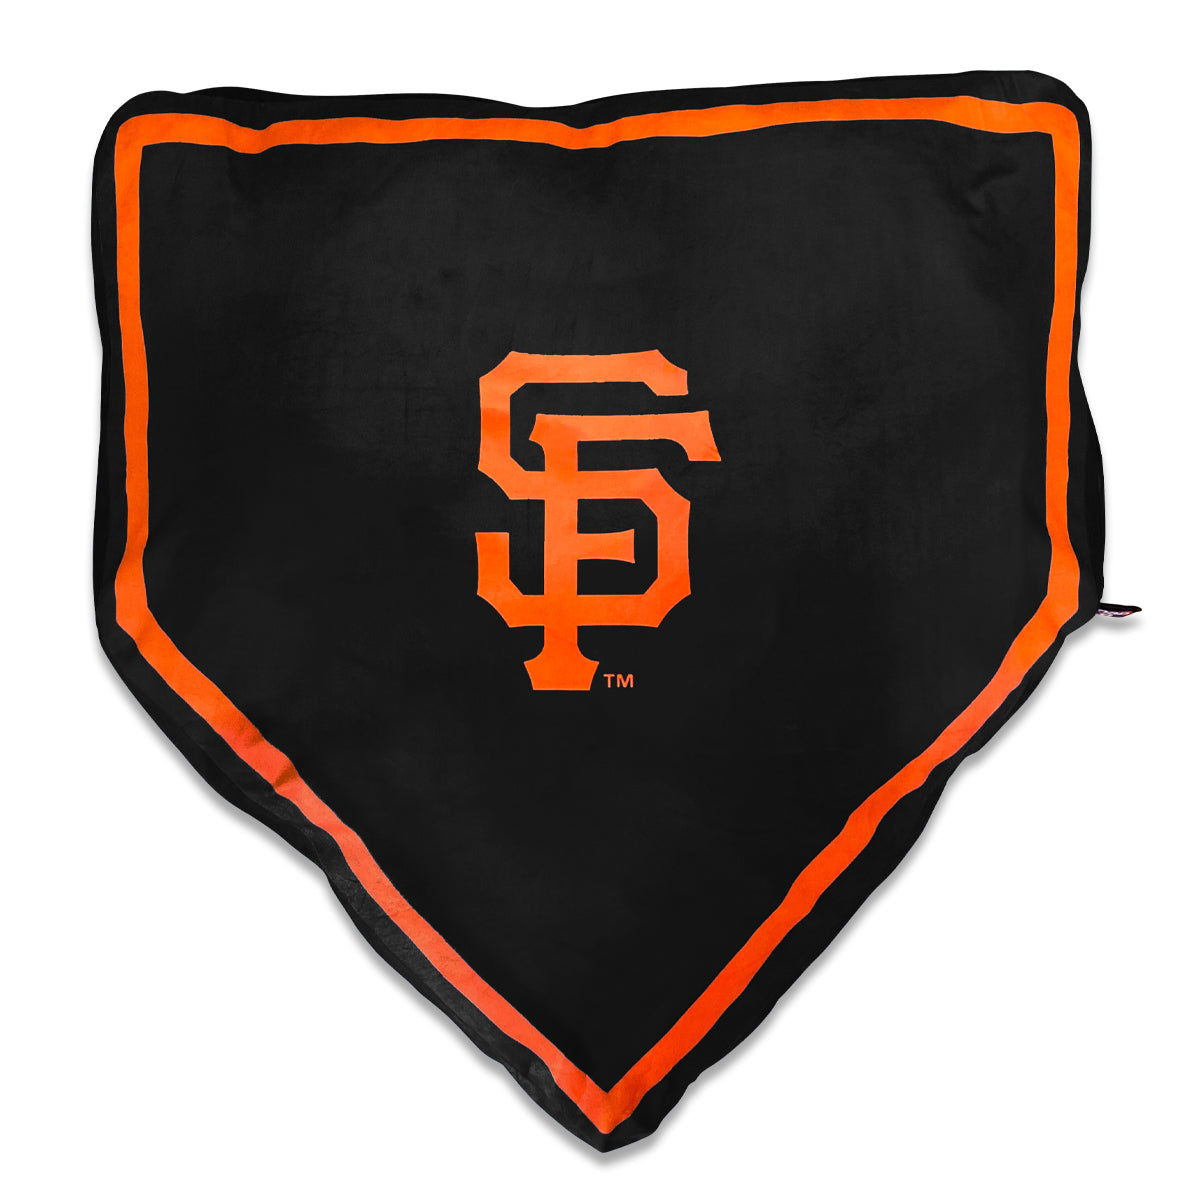 San Francisco Giants Home Plate Bed by Nap Cap